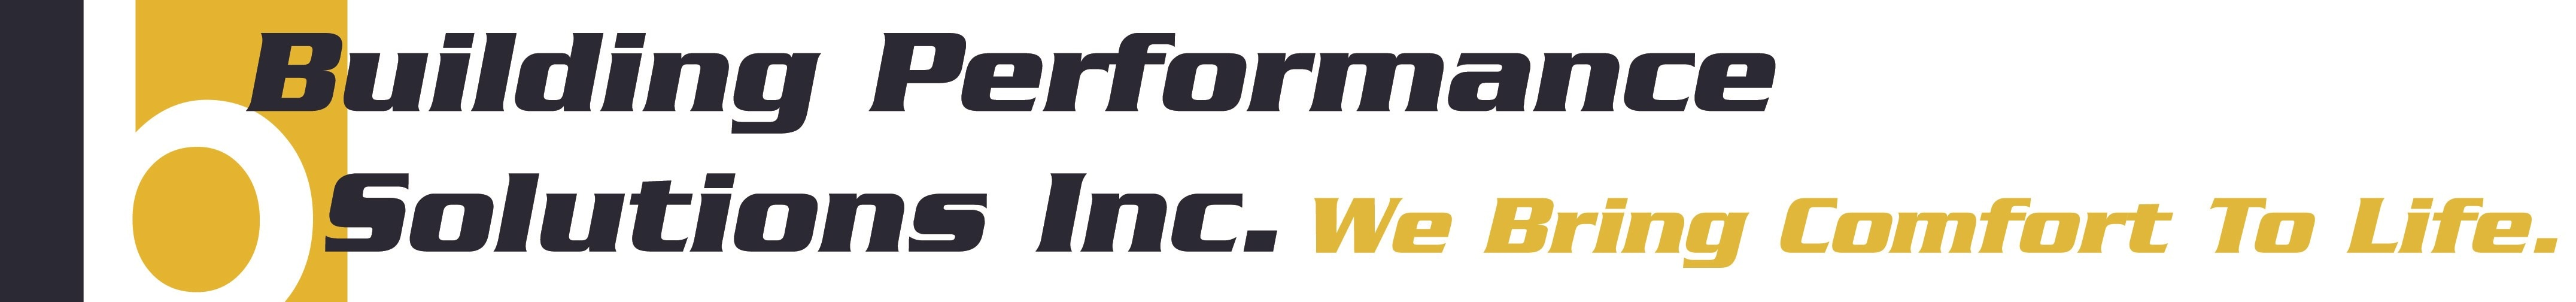 Building Performance Solutions logo